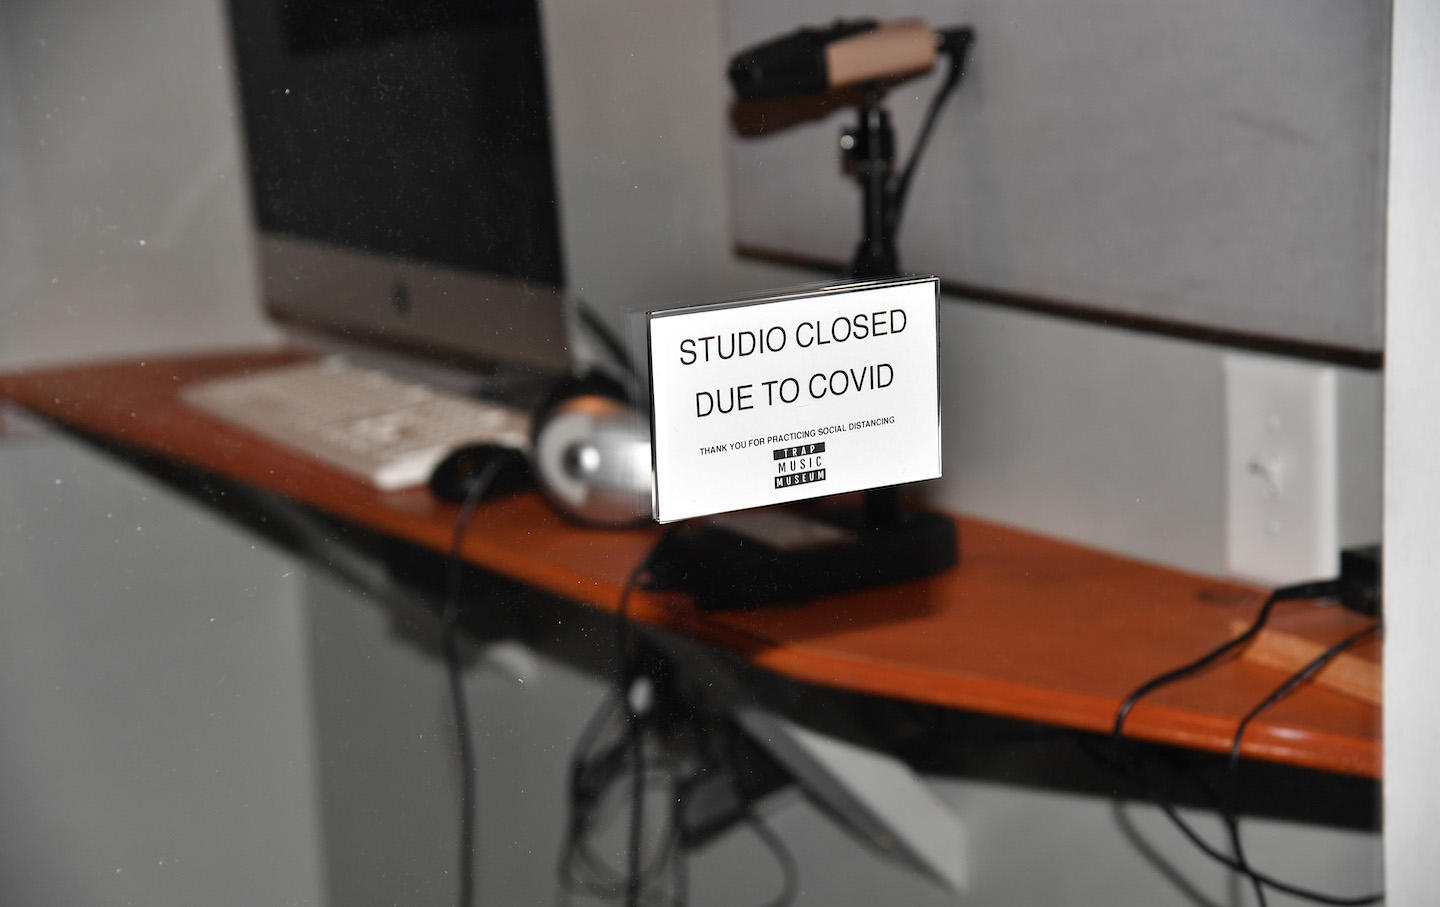 Trap Music Museum Reopens With Preventative Measures Following Temporary Shut Down Amid The COVID-19 Pandemic